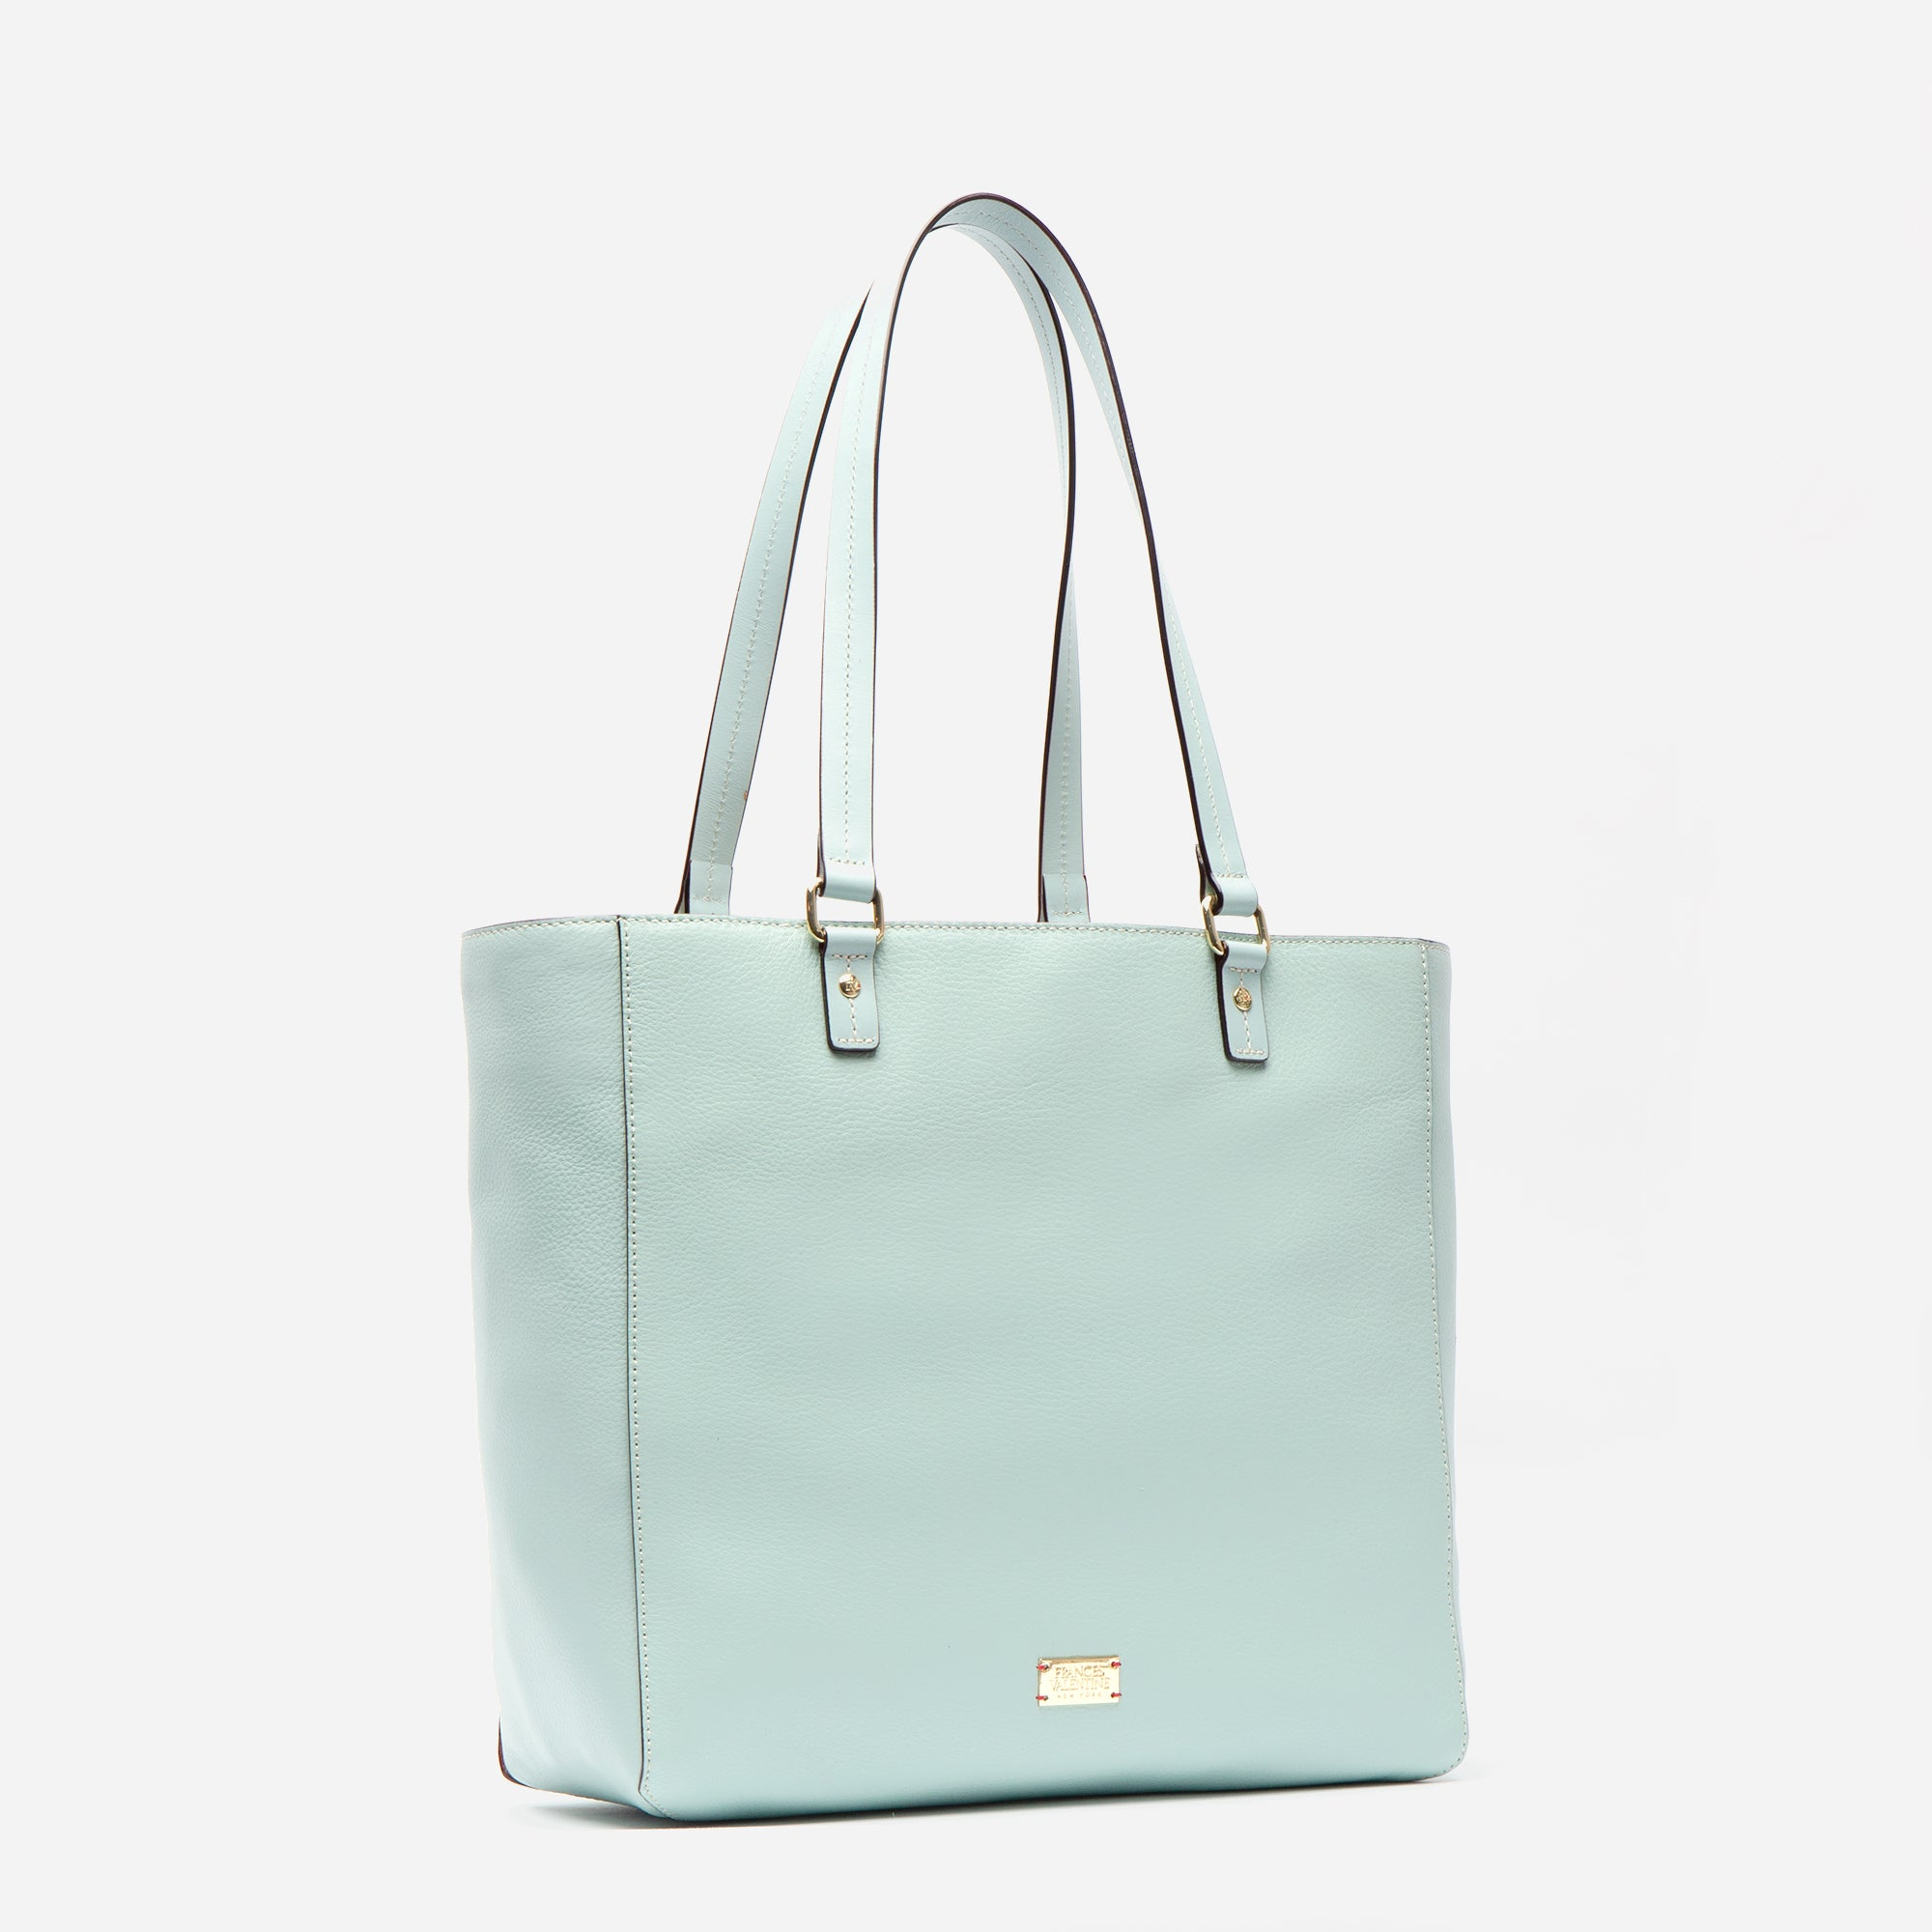 Margie Tote Tumbled Leather Light Blue